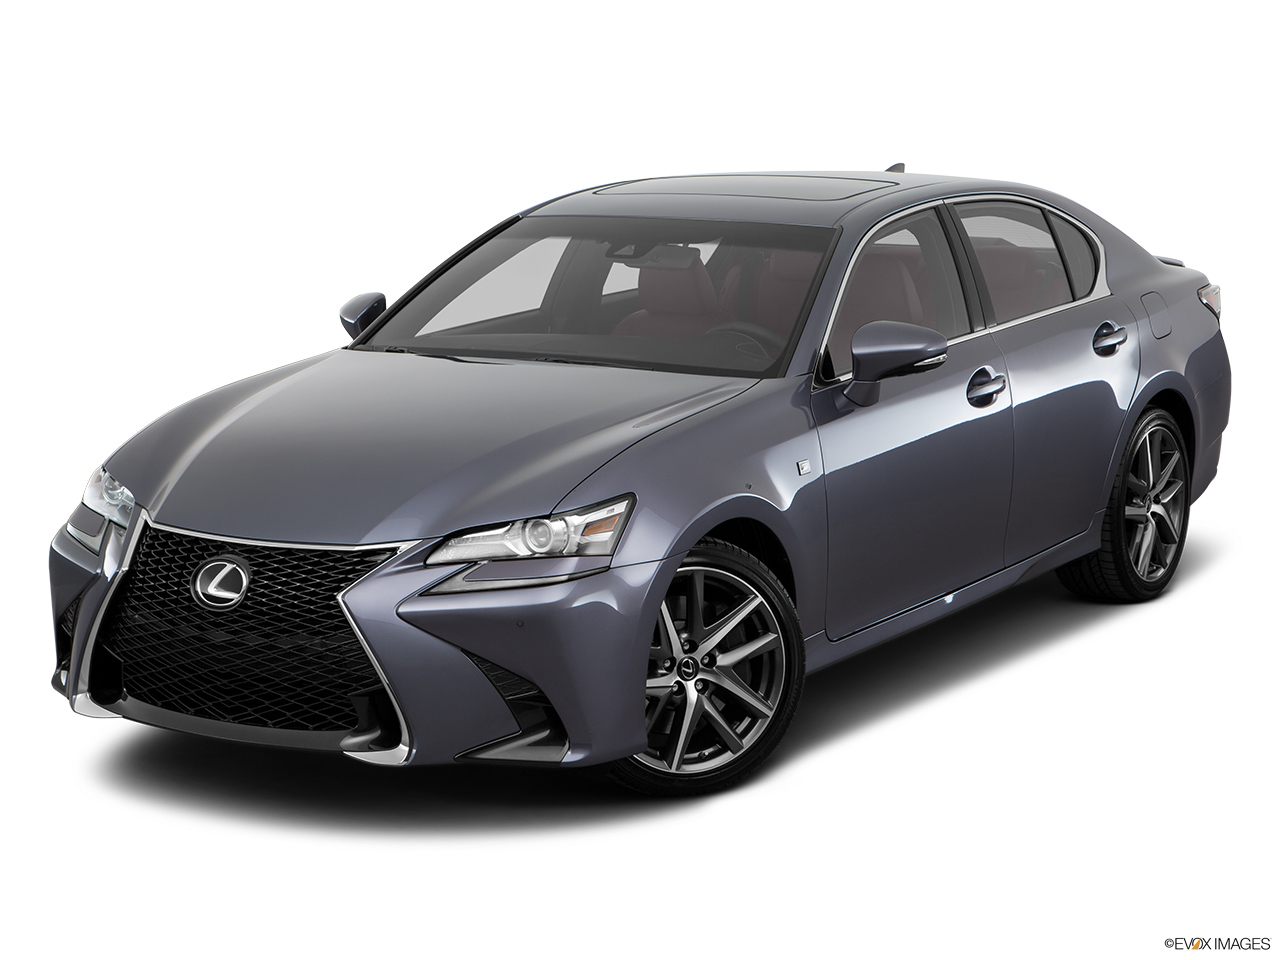 car features list for lexus gs 2016 350 f sport uae yallamotor. Black Bedroom Furniture Sets. Home Design Ideas